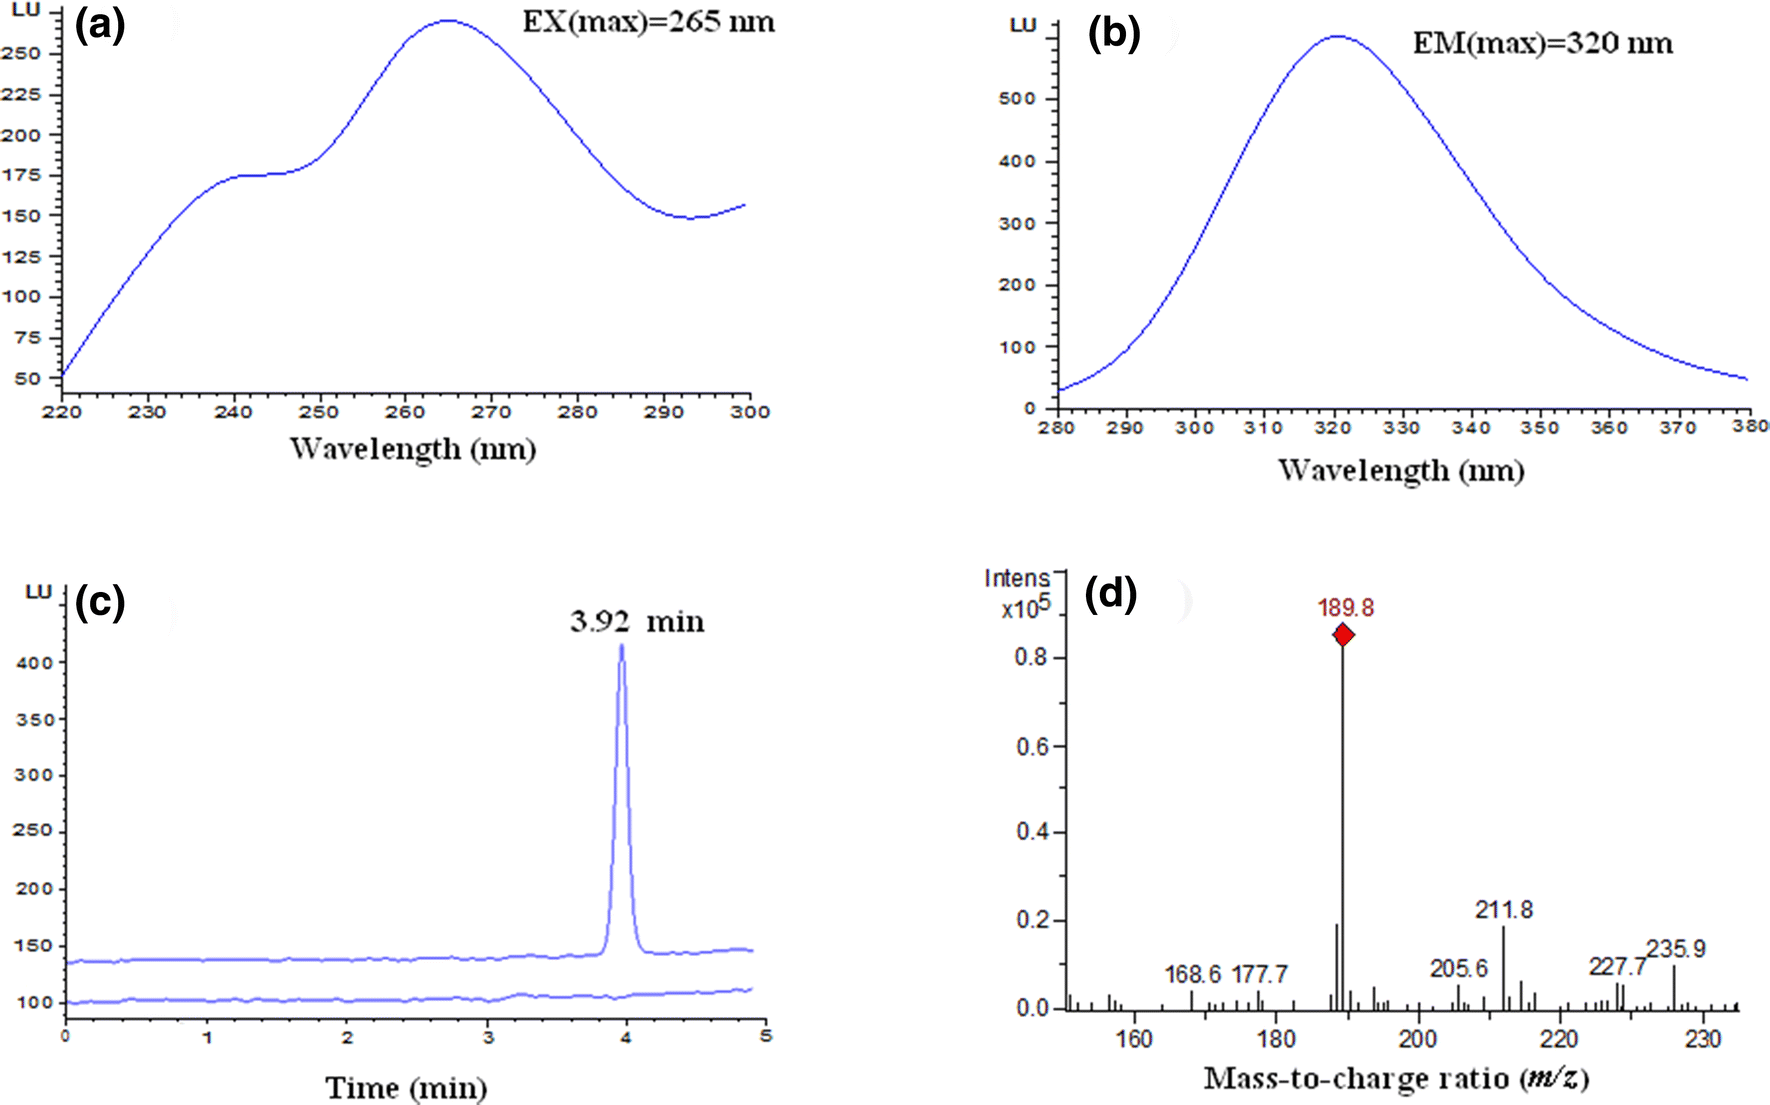 Determination of Semicarbazide in Foodstuffs by HPLC with